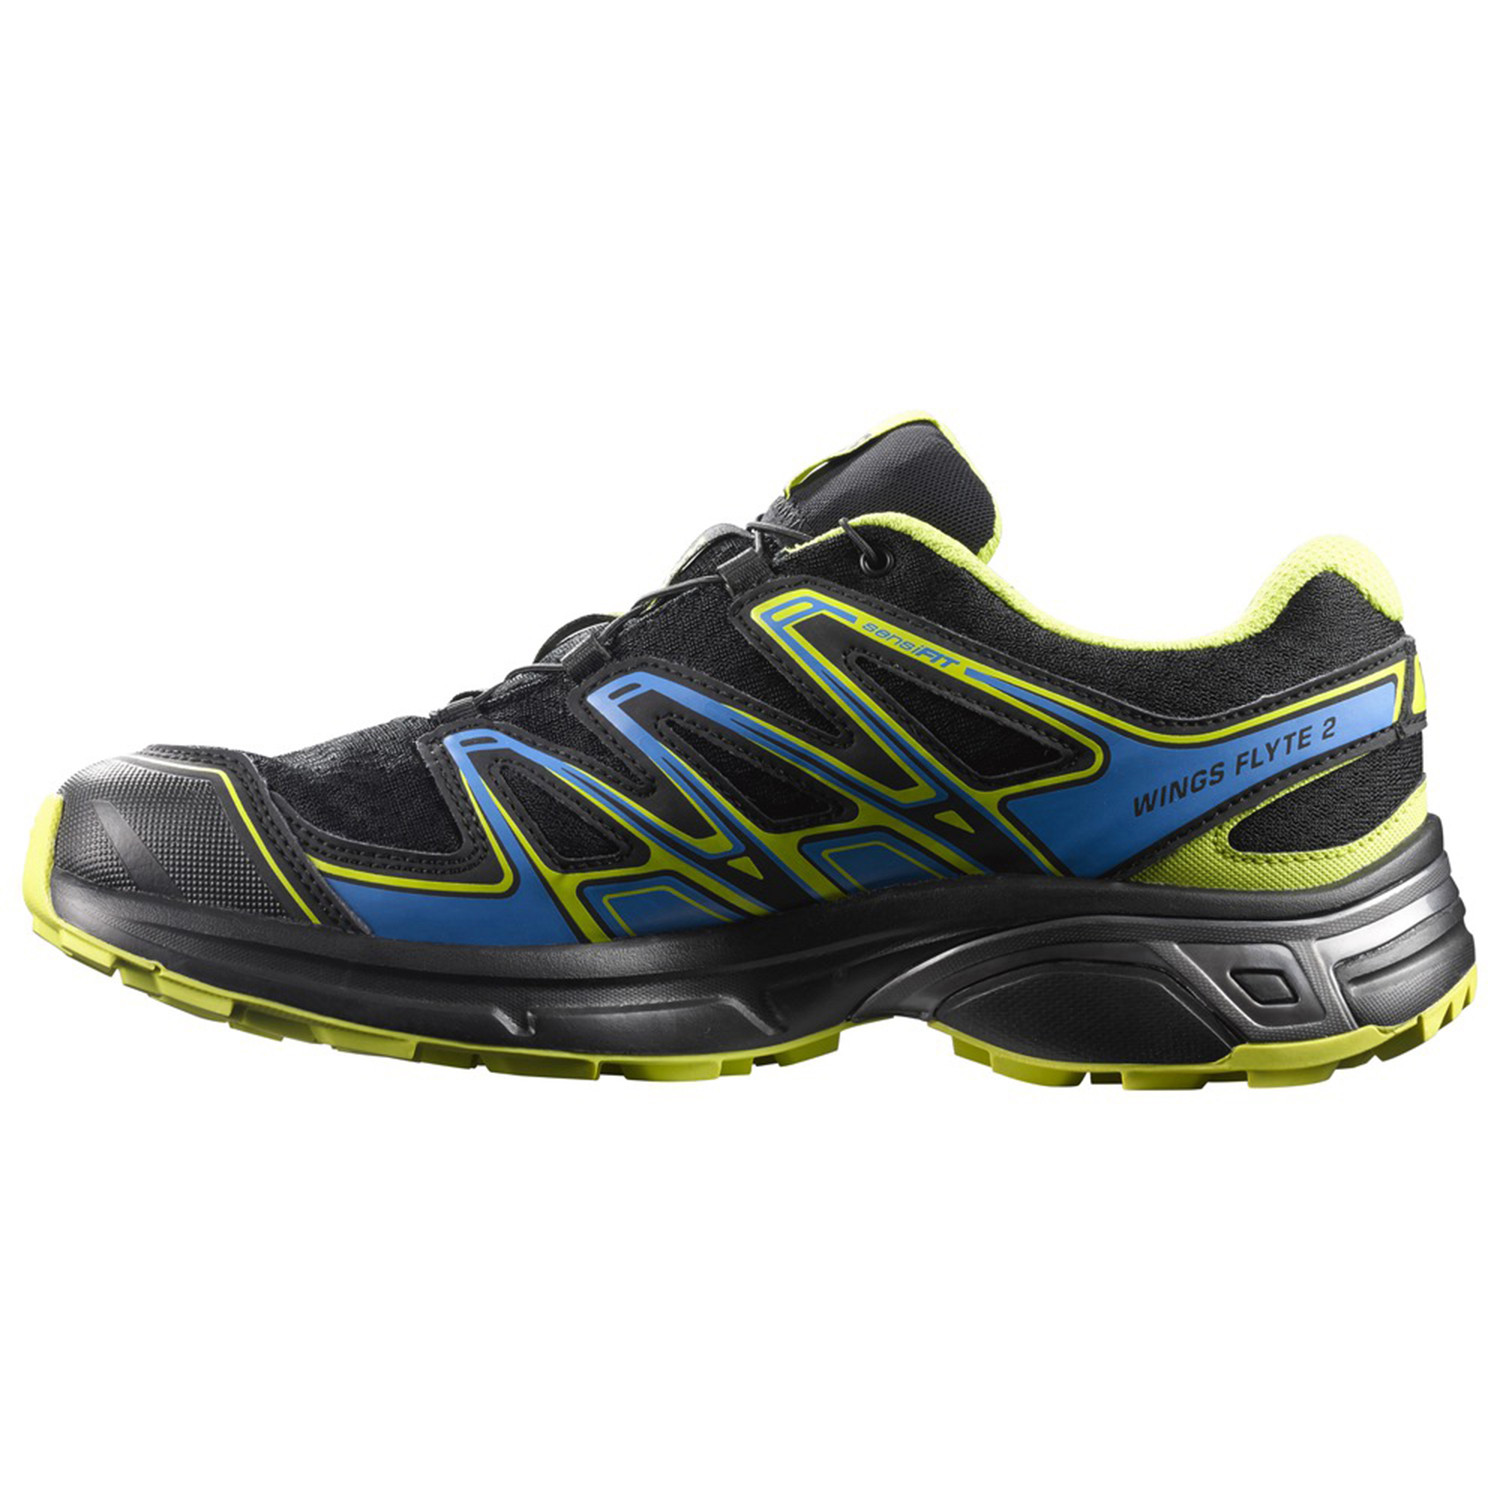 Wings Flyte 2 Gtx Chaussure Trail Homme